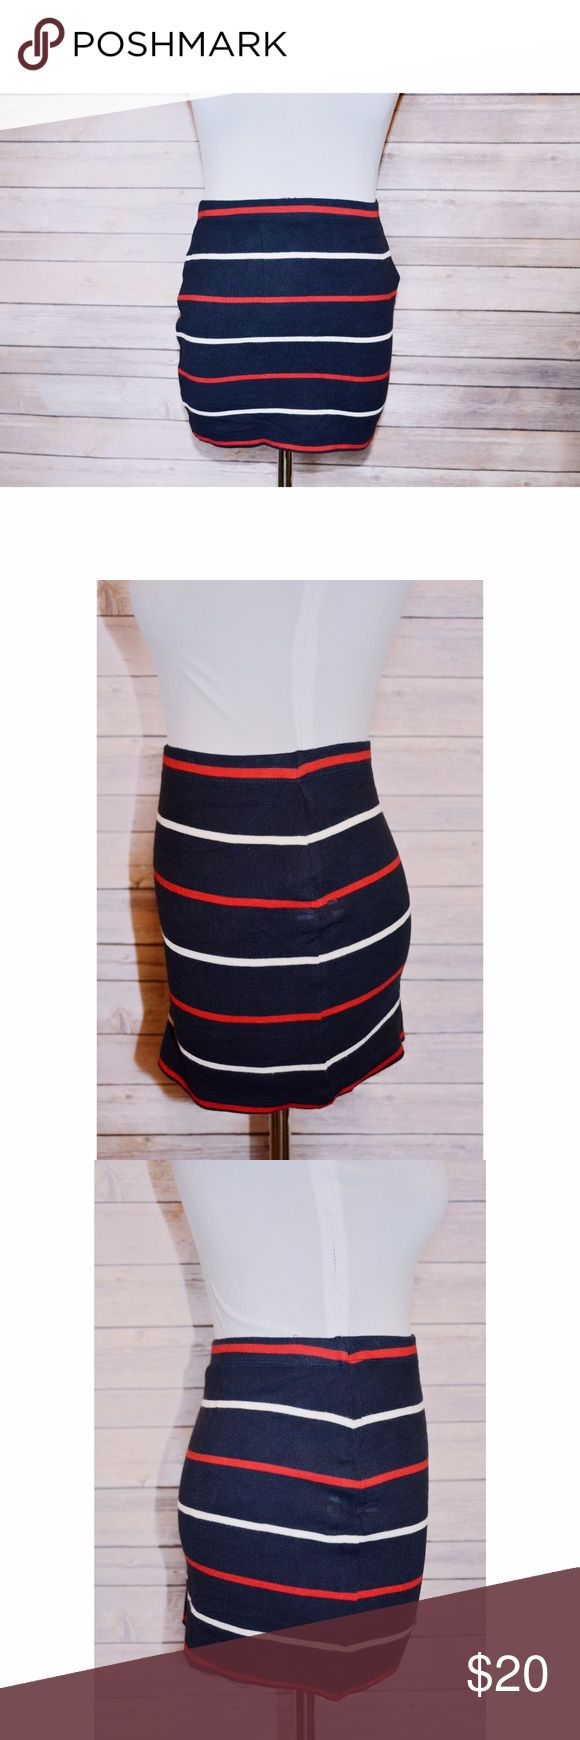 Forever 21 Patriotic Striped Mini Skirt Show your love for the red, white & blue in this  patriotic little mini from Forever 21!  Stretch.  Mini skirt.  Navy blue with red & white stripes.  Waist measures 12.5 inches when laying flat.  Length measures 12 inches.  Size Small  Worn once for 2 hours so this little number is in pristine condition!  Smoke free home.  Super fun & perfect for patriotic parties! Forever 21 Skirts Mini